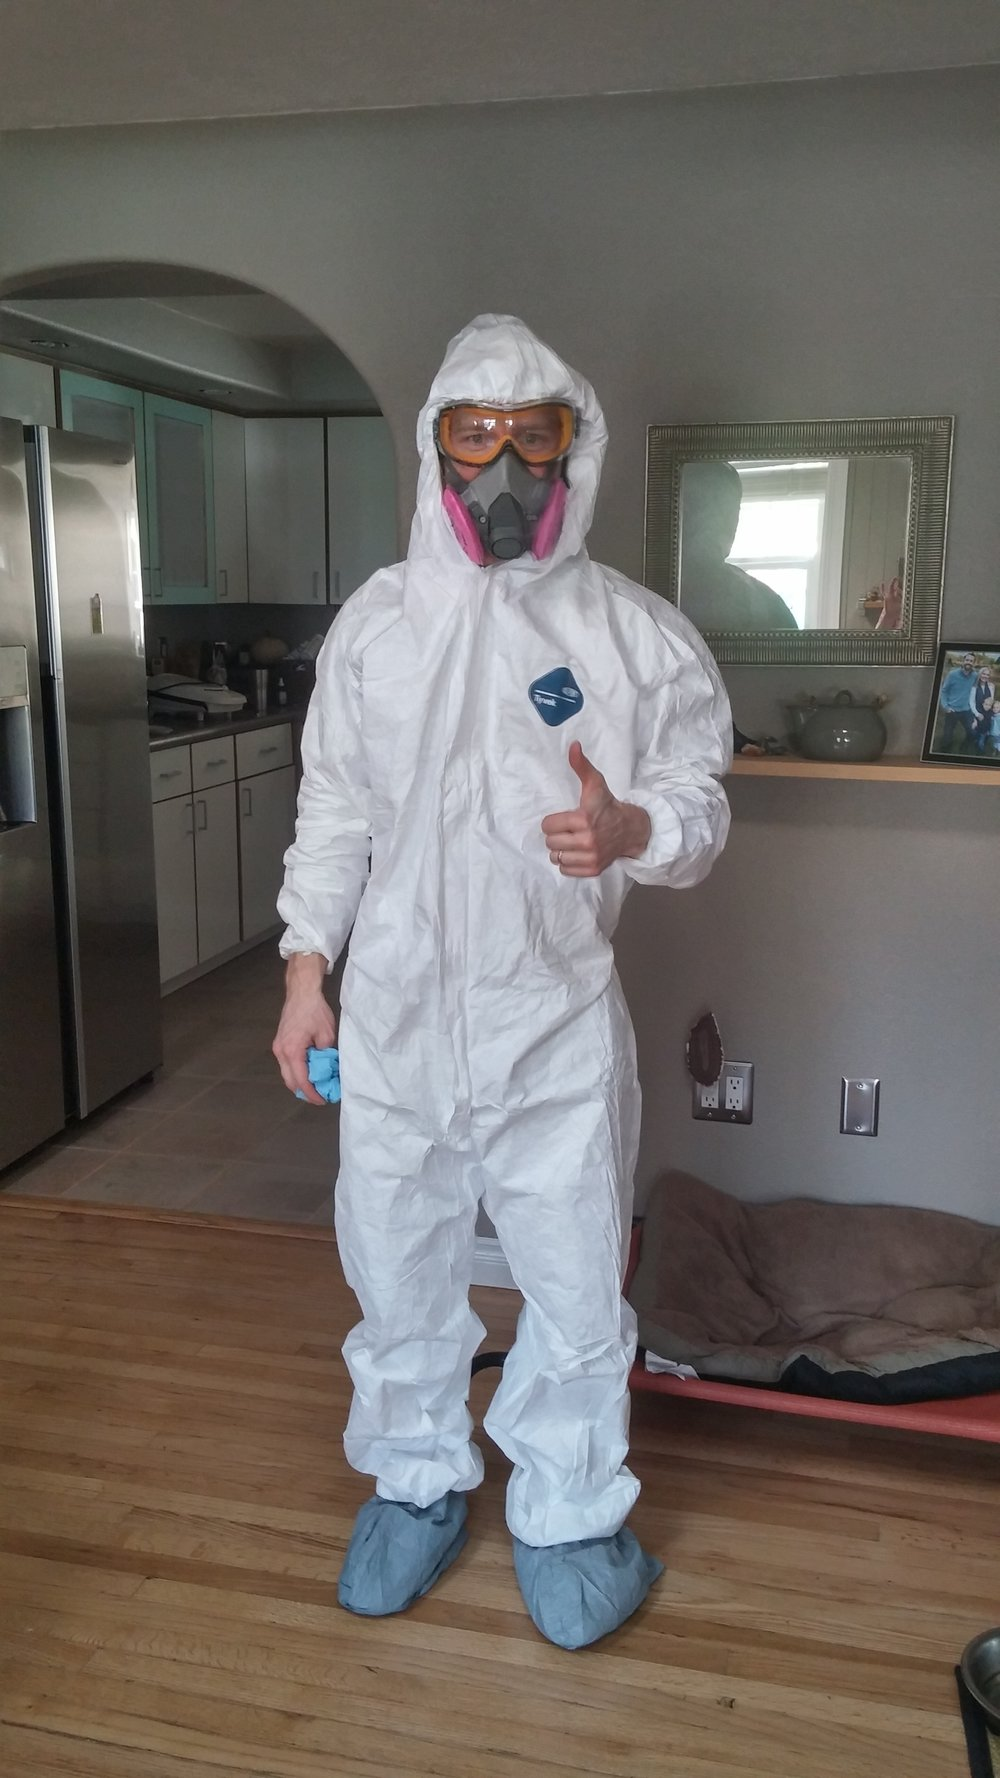 These hazmat suits don't protect you 100%, but at least they look cool.